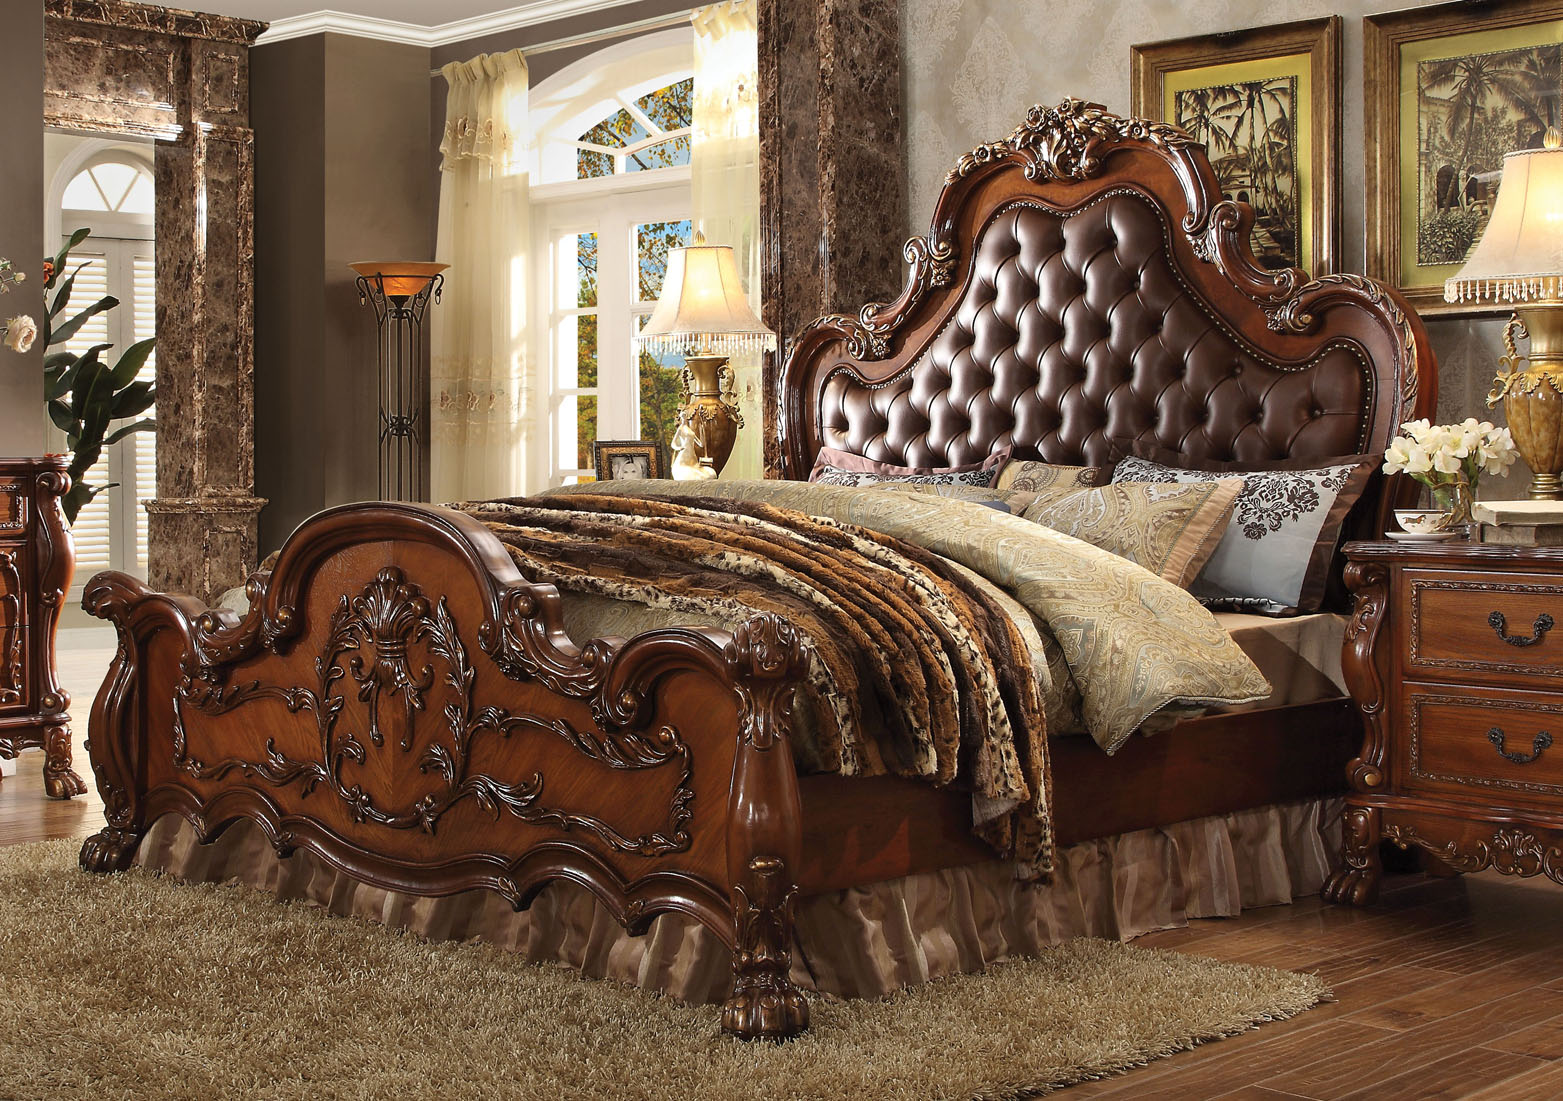 4 Pc Acme Dresden Tufted Bedroom Set In Cherry Finish